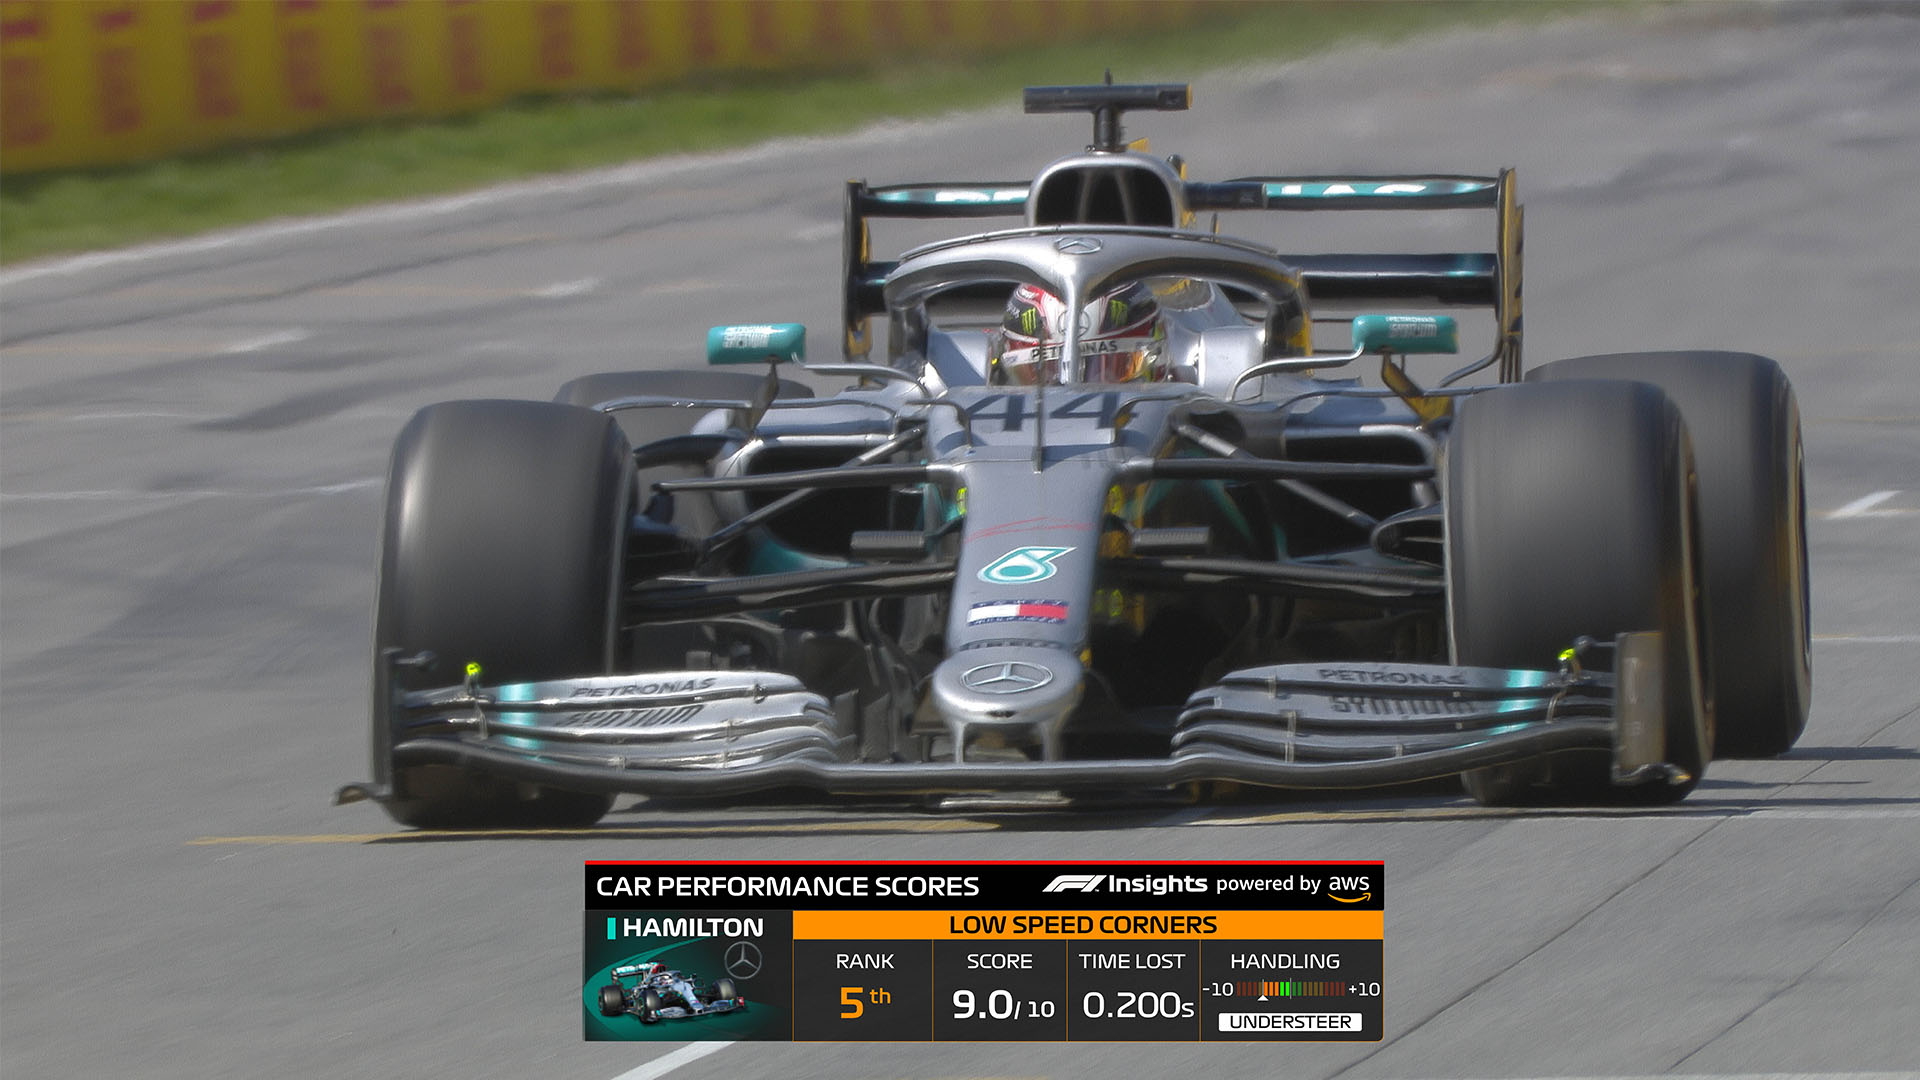 F1 Set To Debut New Tv Graphics In 2020 Showing Car Performance Driver Comparisons And More Formula 1